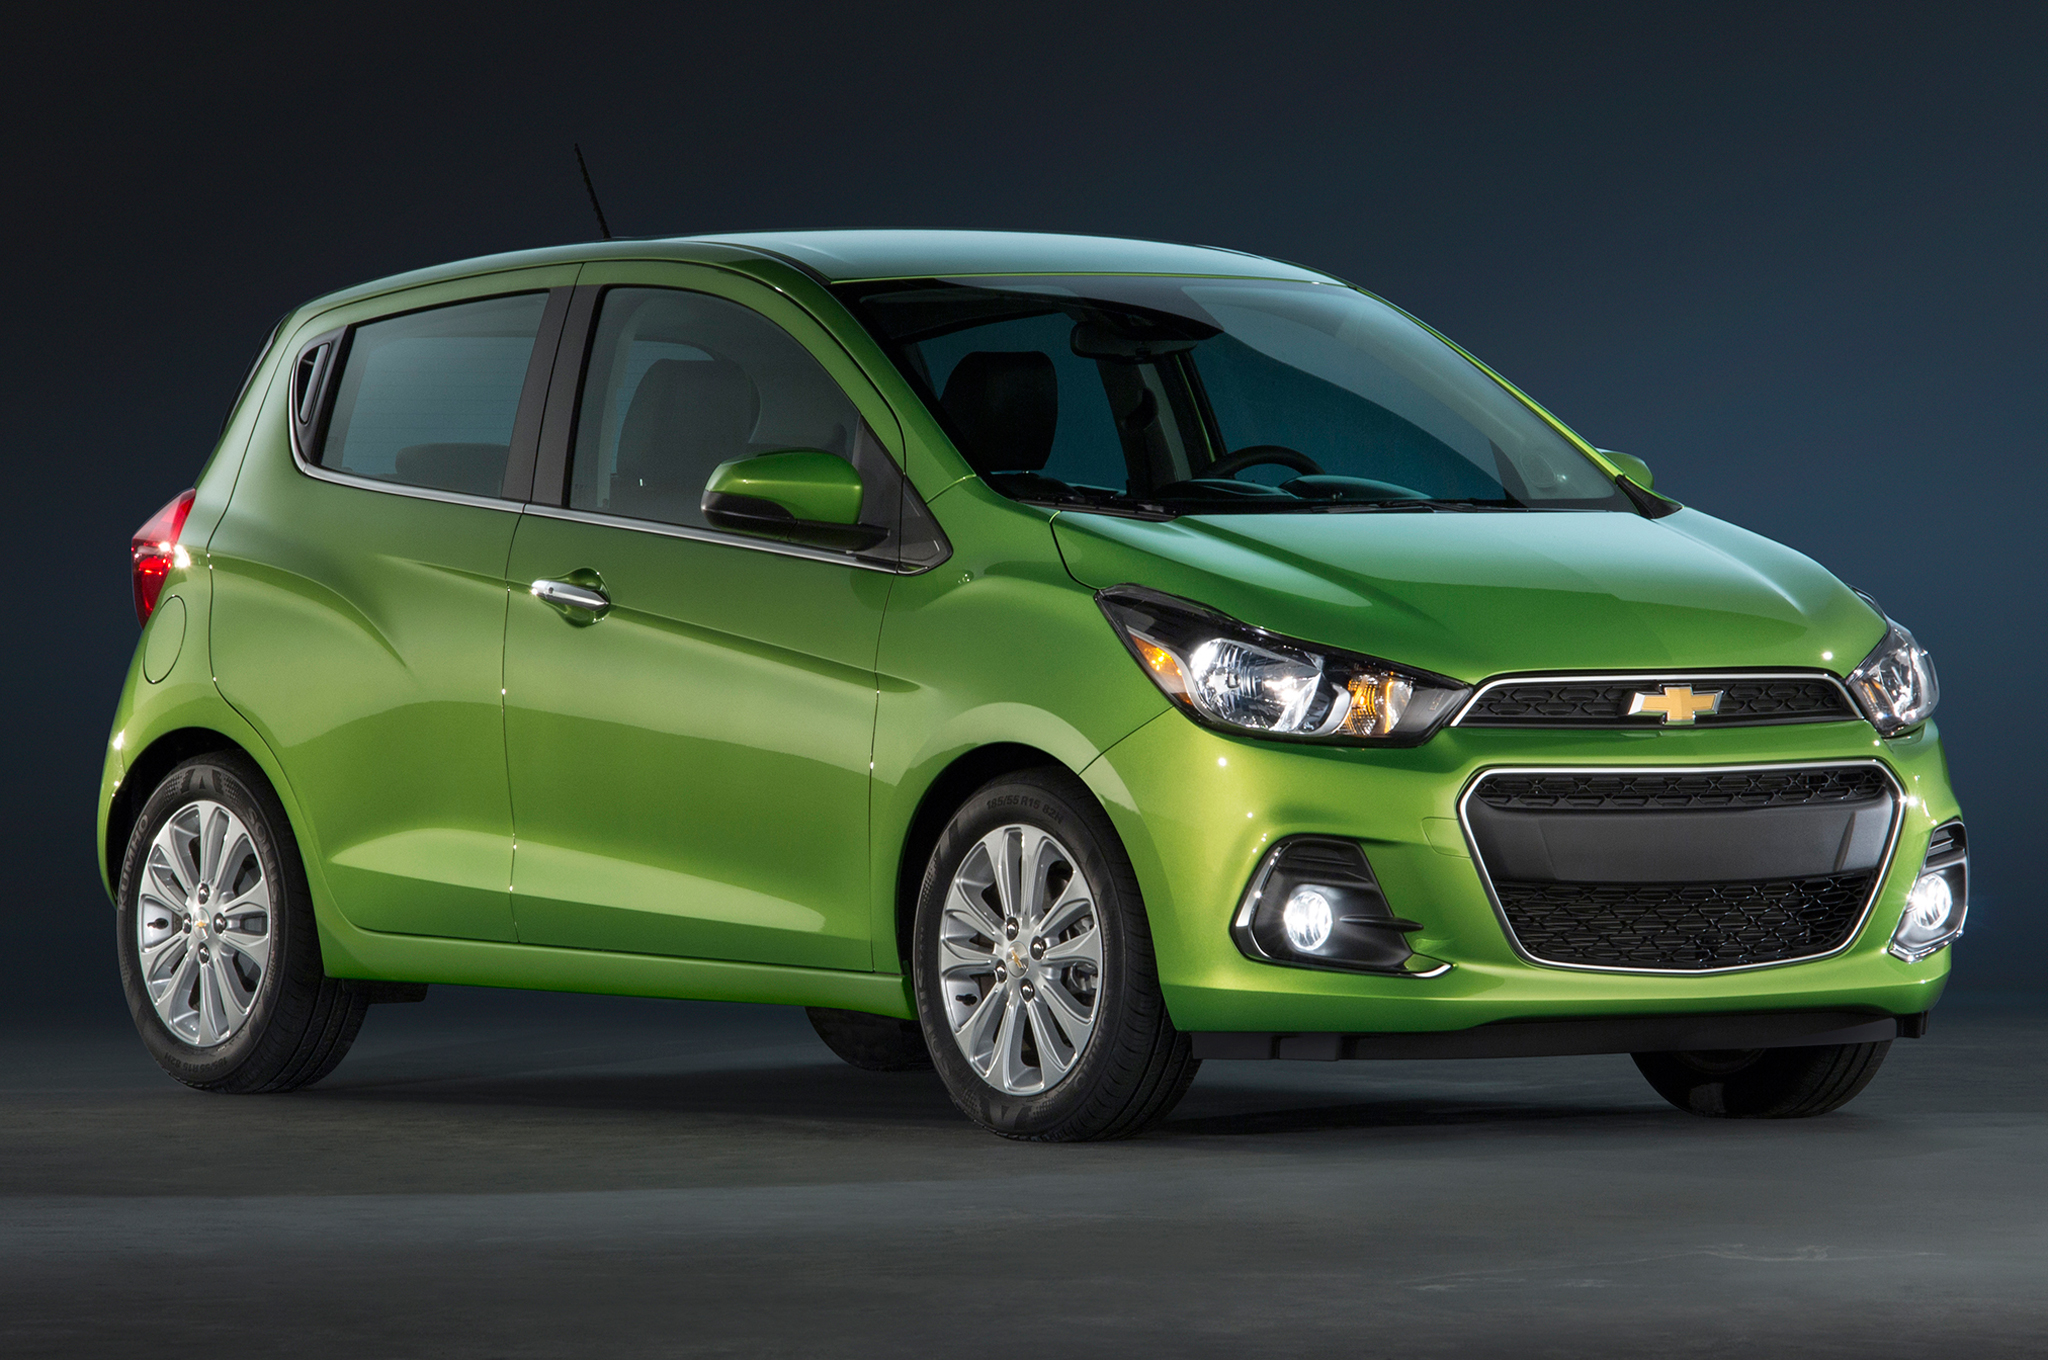 2016 chevrolet spark first look [ 2048 x 1360 Pixel ]